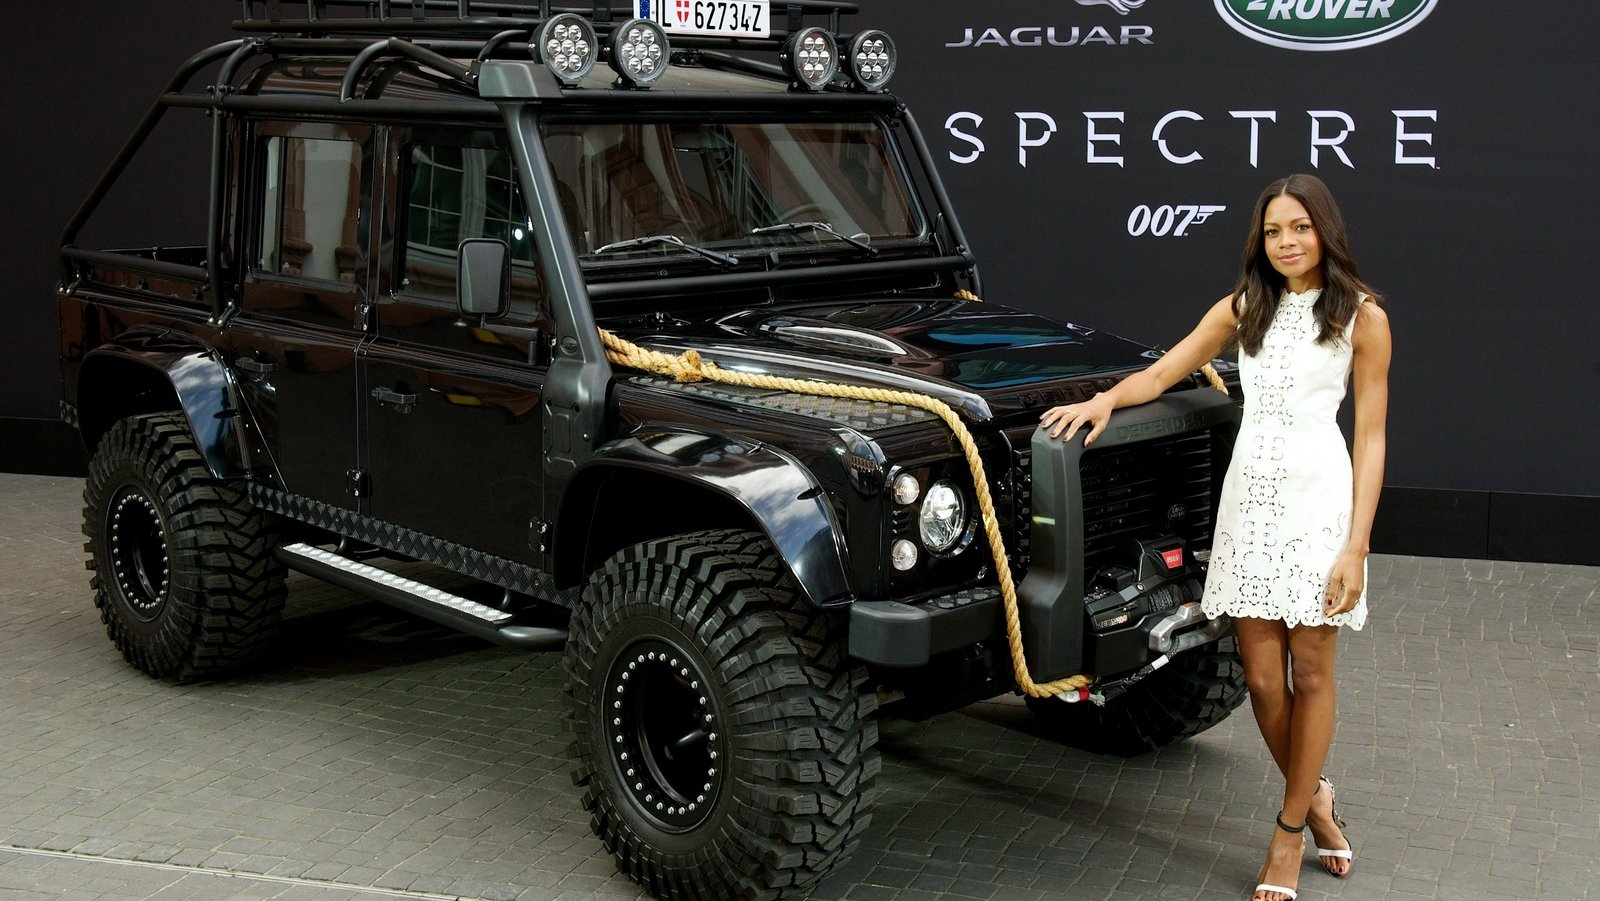 Commercial Vehicle Manufacturers Reviews 2015 Land Rover Defender Spectre Stunt Car Picture